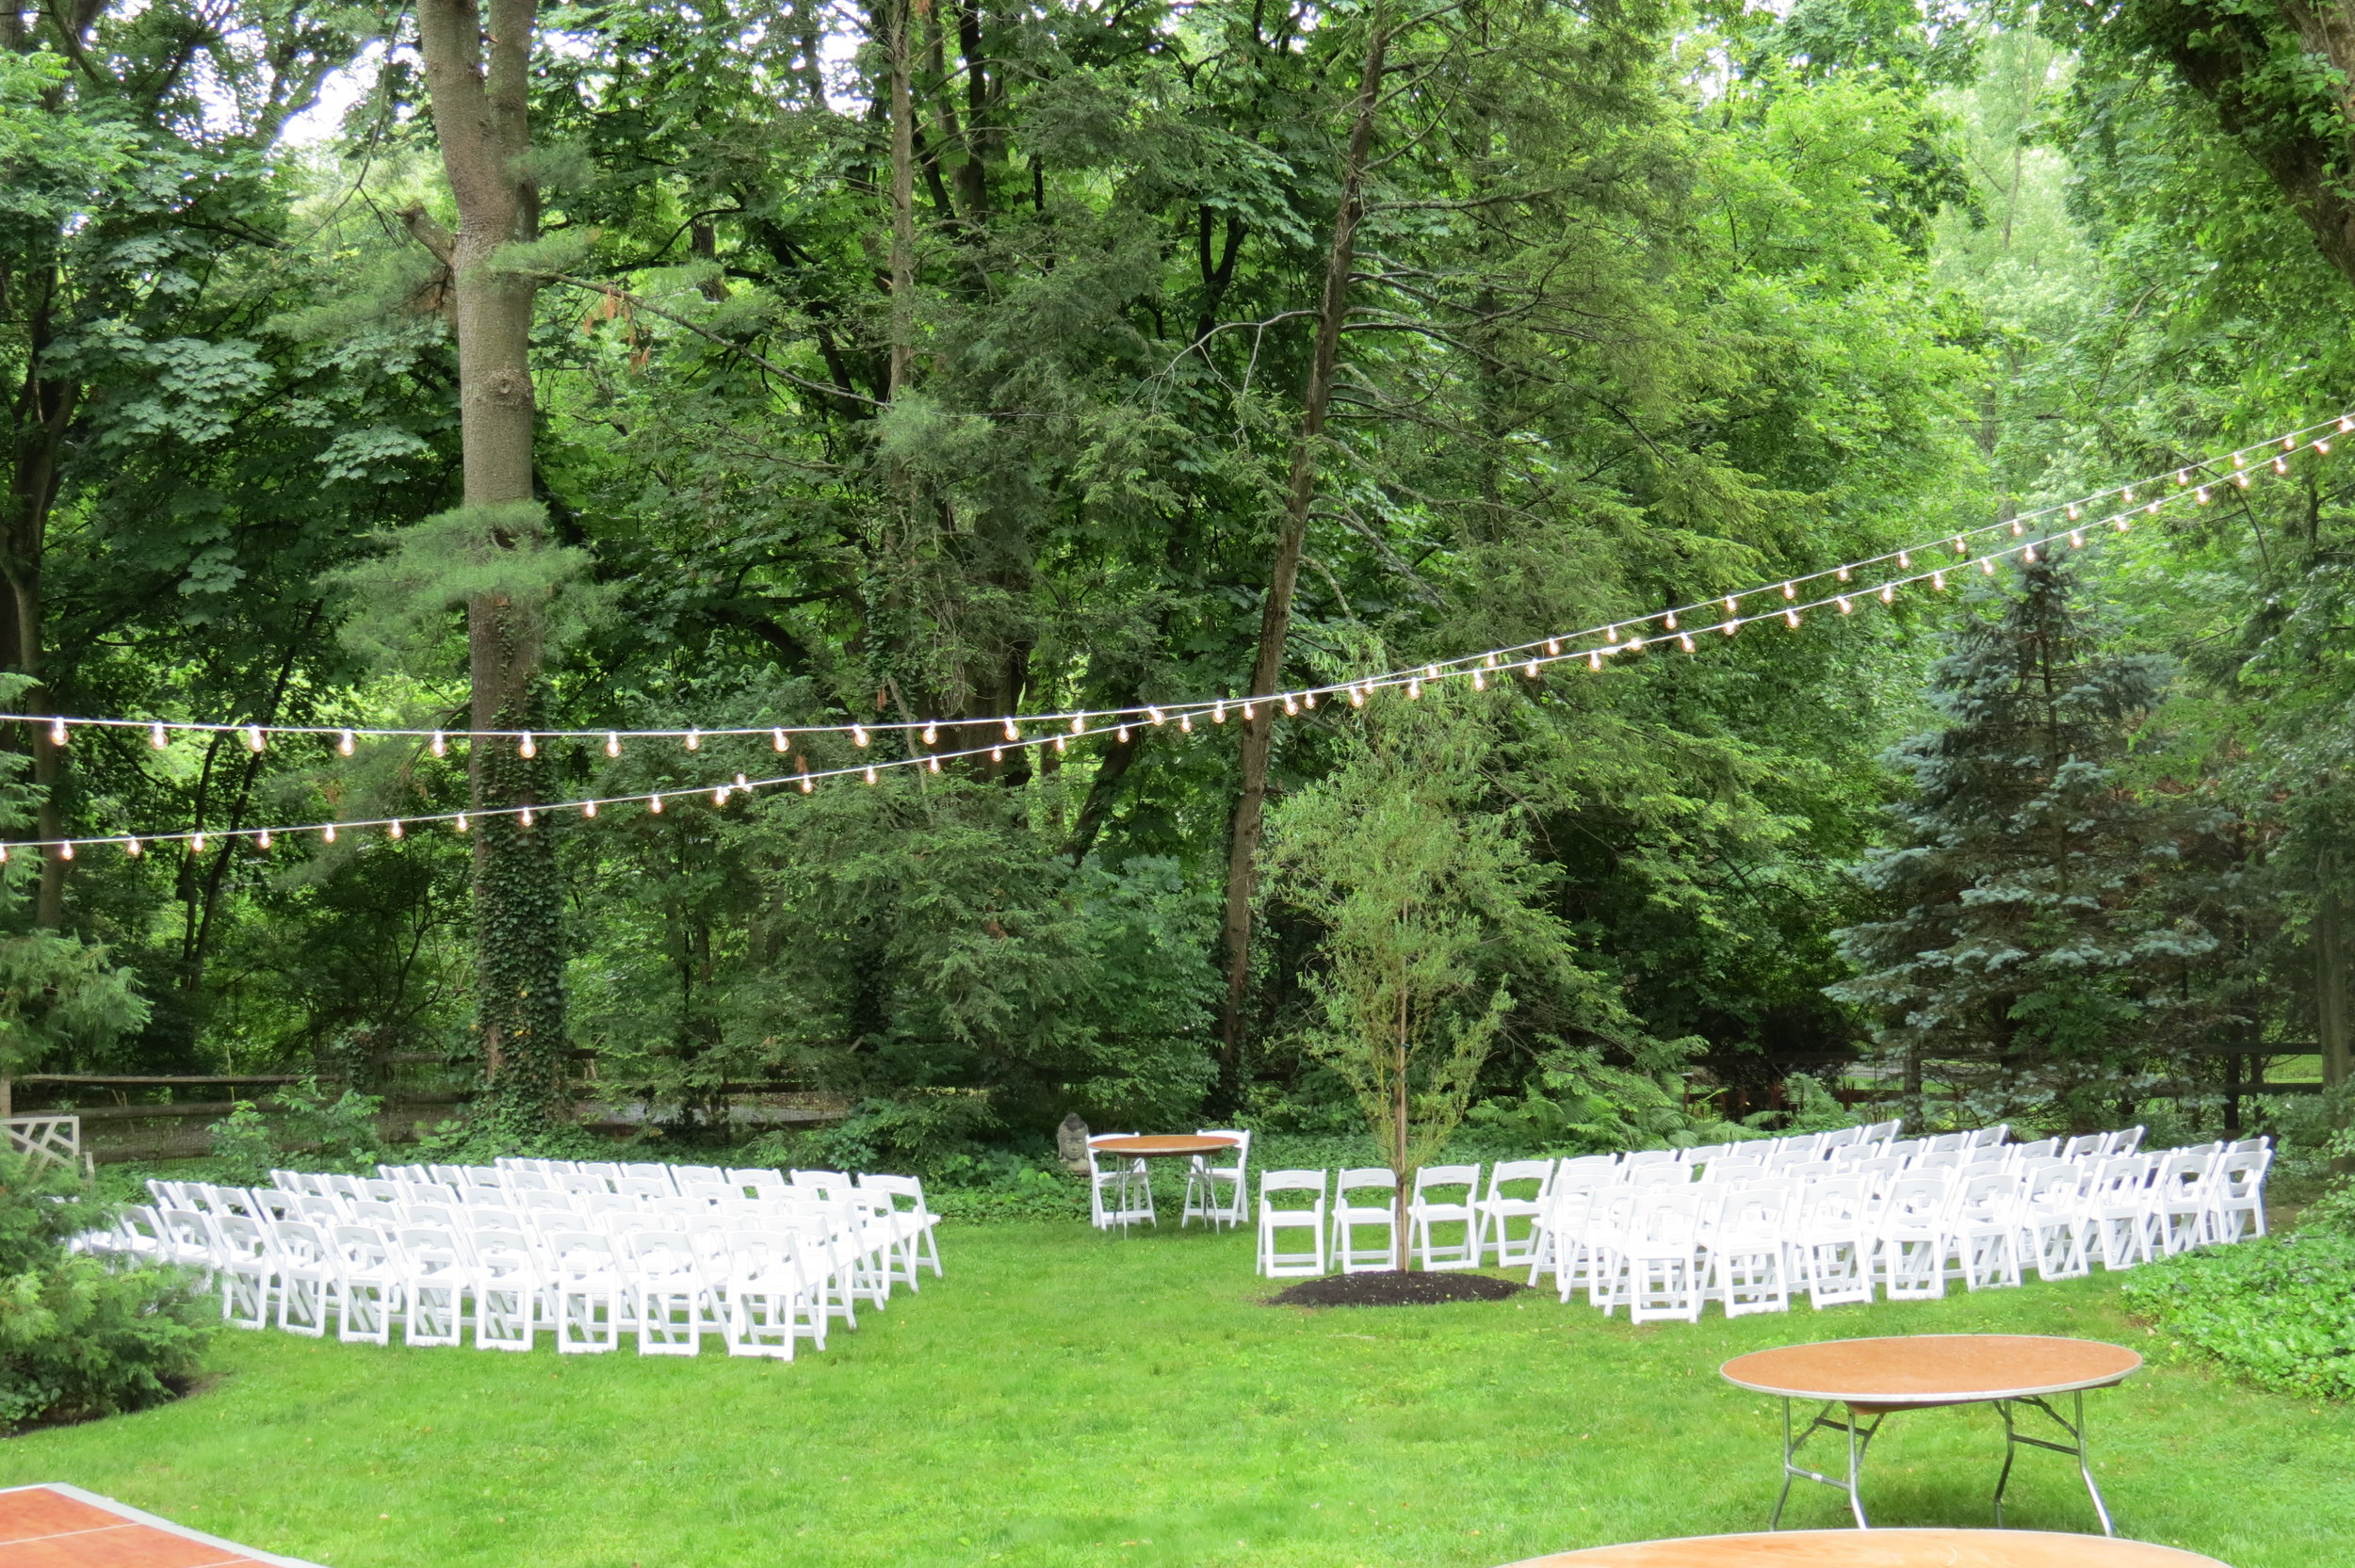 Lights, chairs and tables to rent for your outdoor wedding